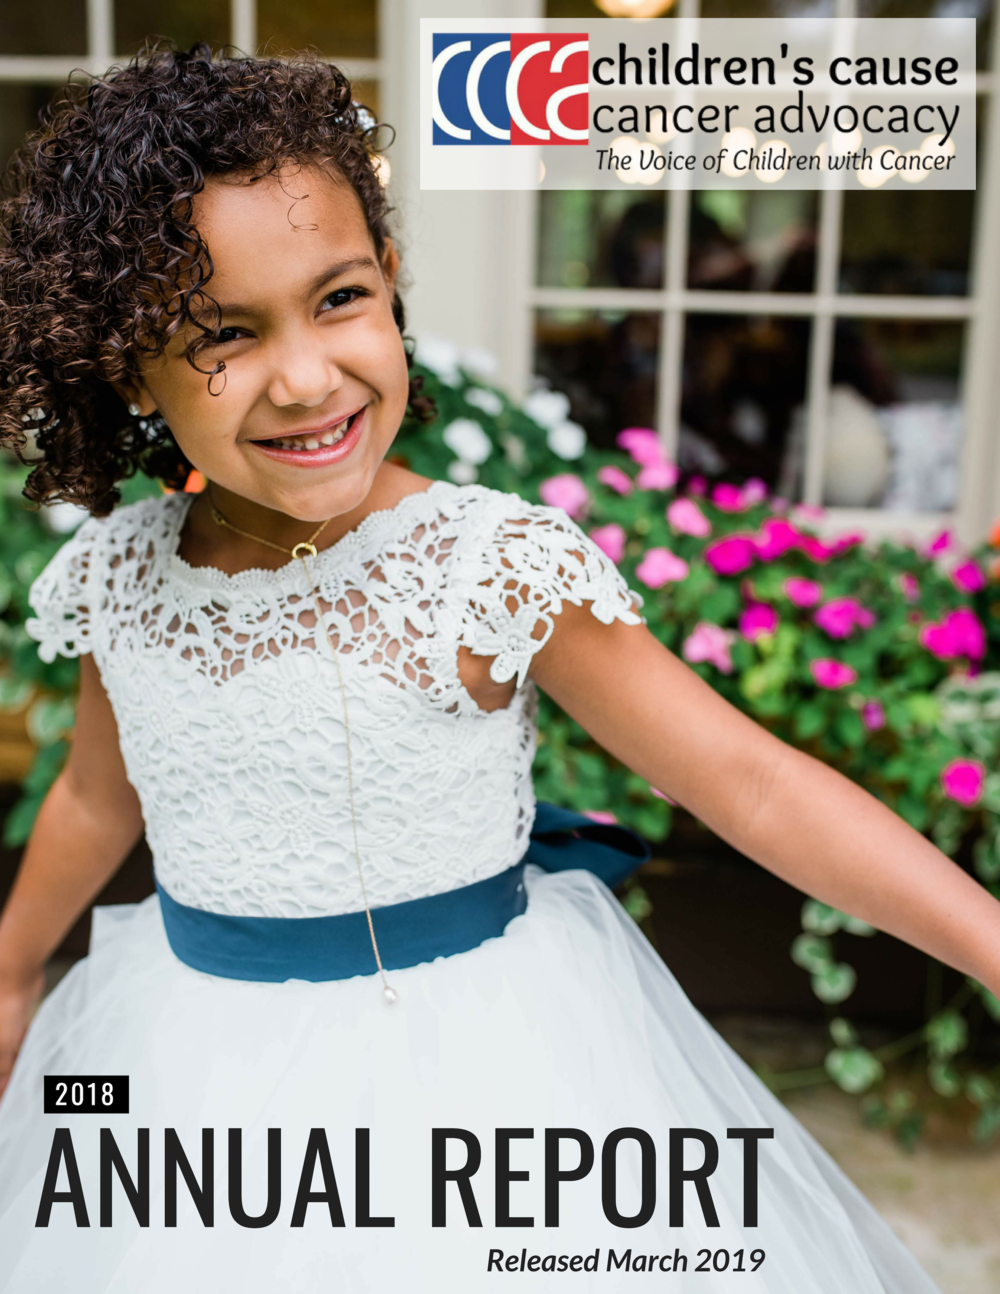 Click the cover image to view a PDF of our 2018 annual report.